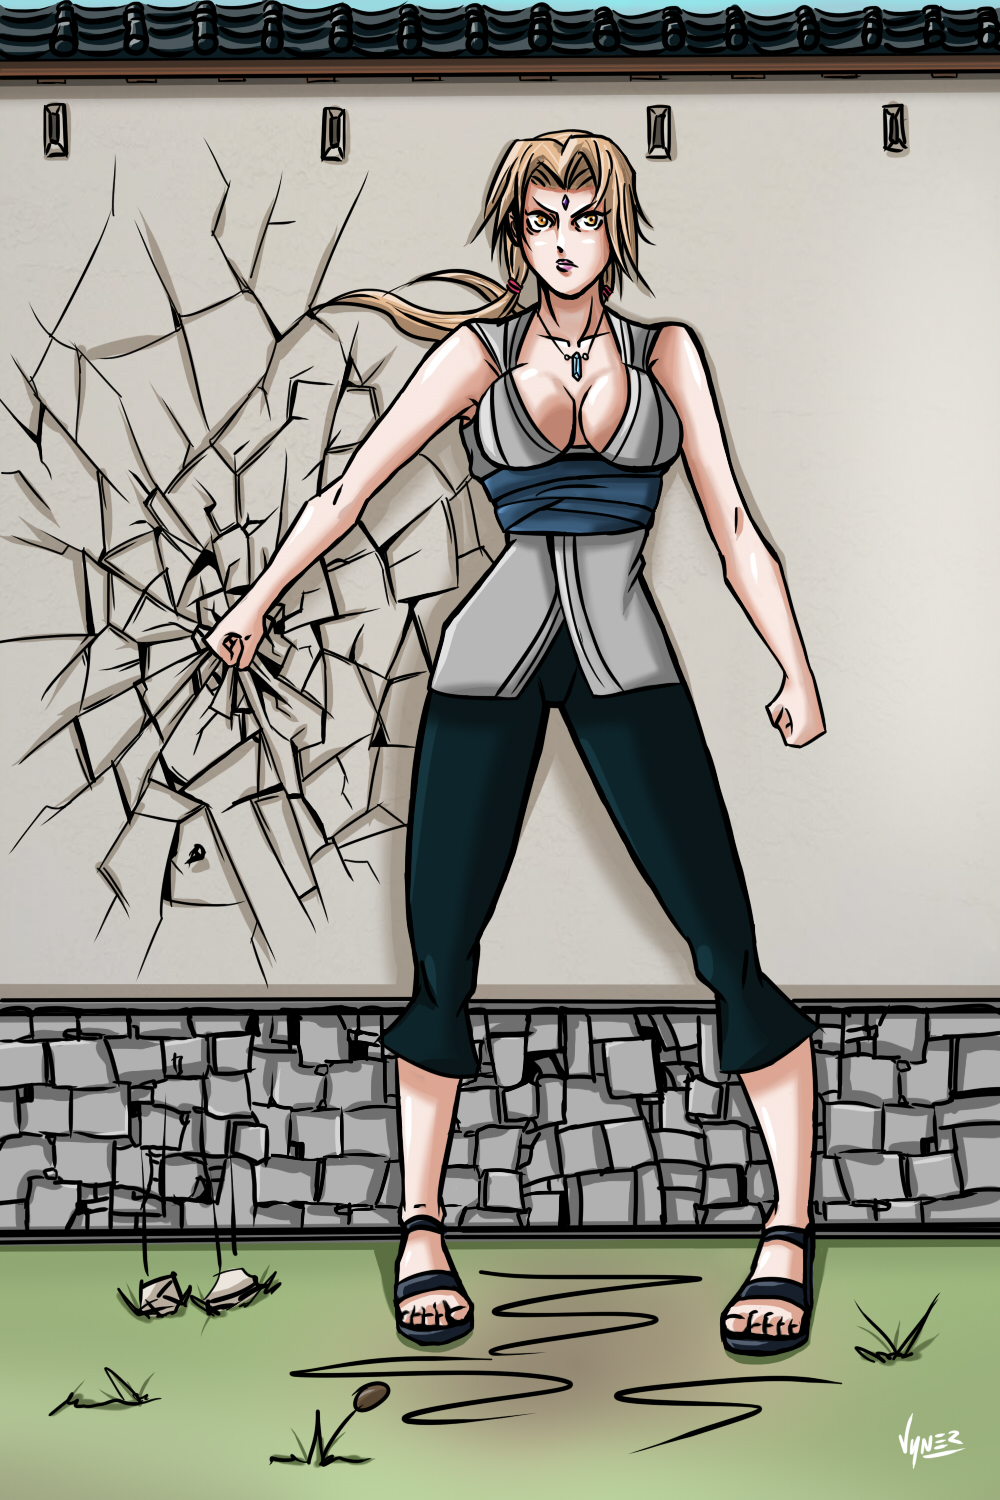 Naruto-Tsunade-wallpaper-wp50010519